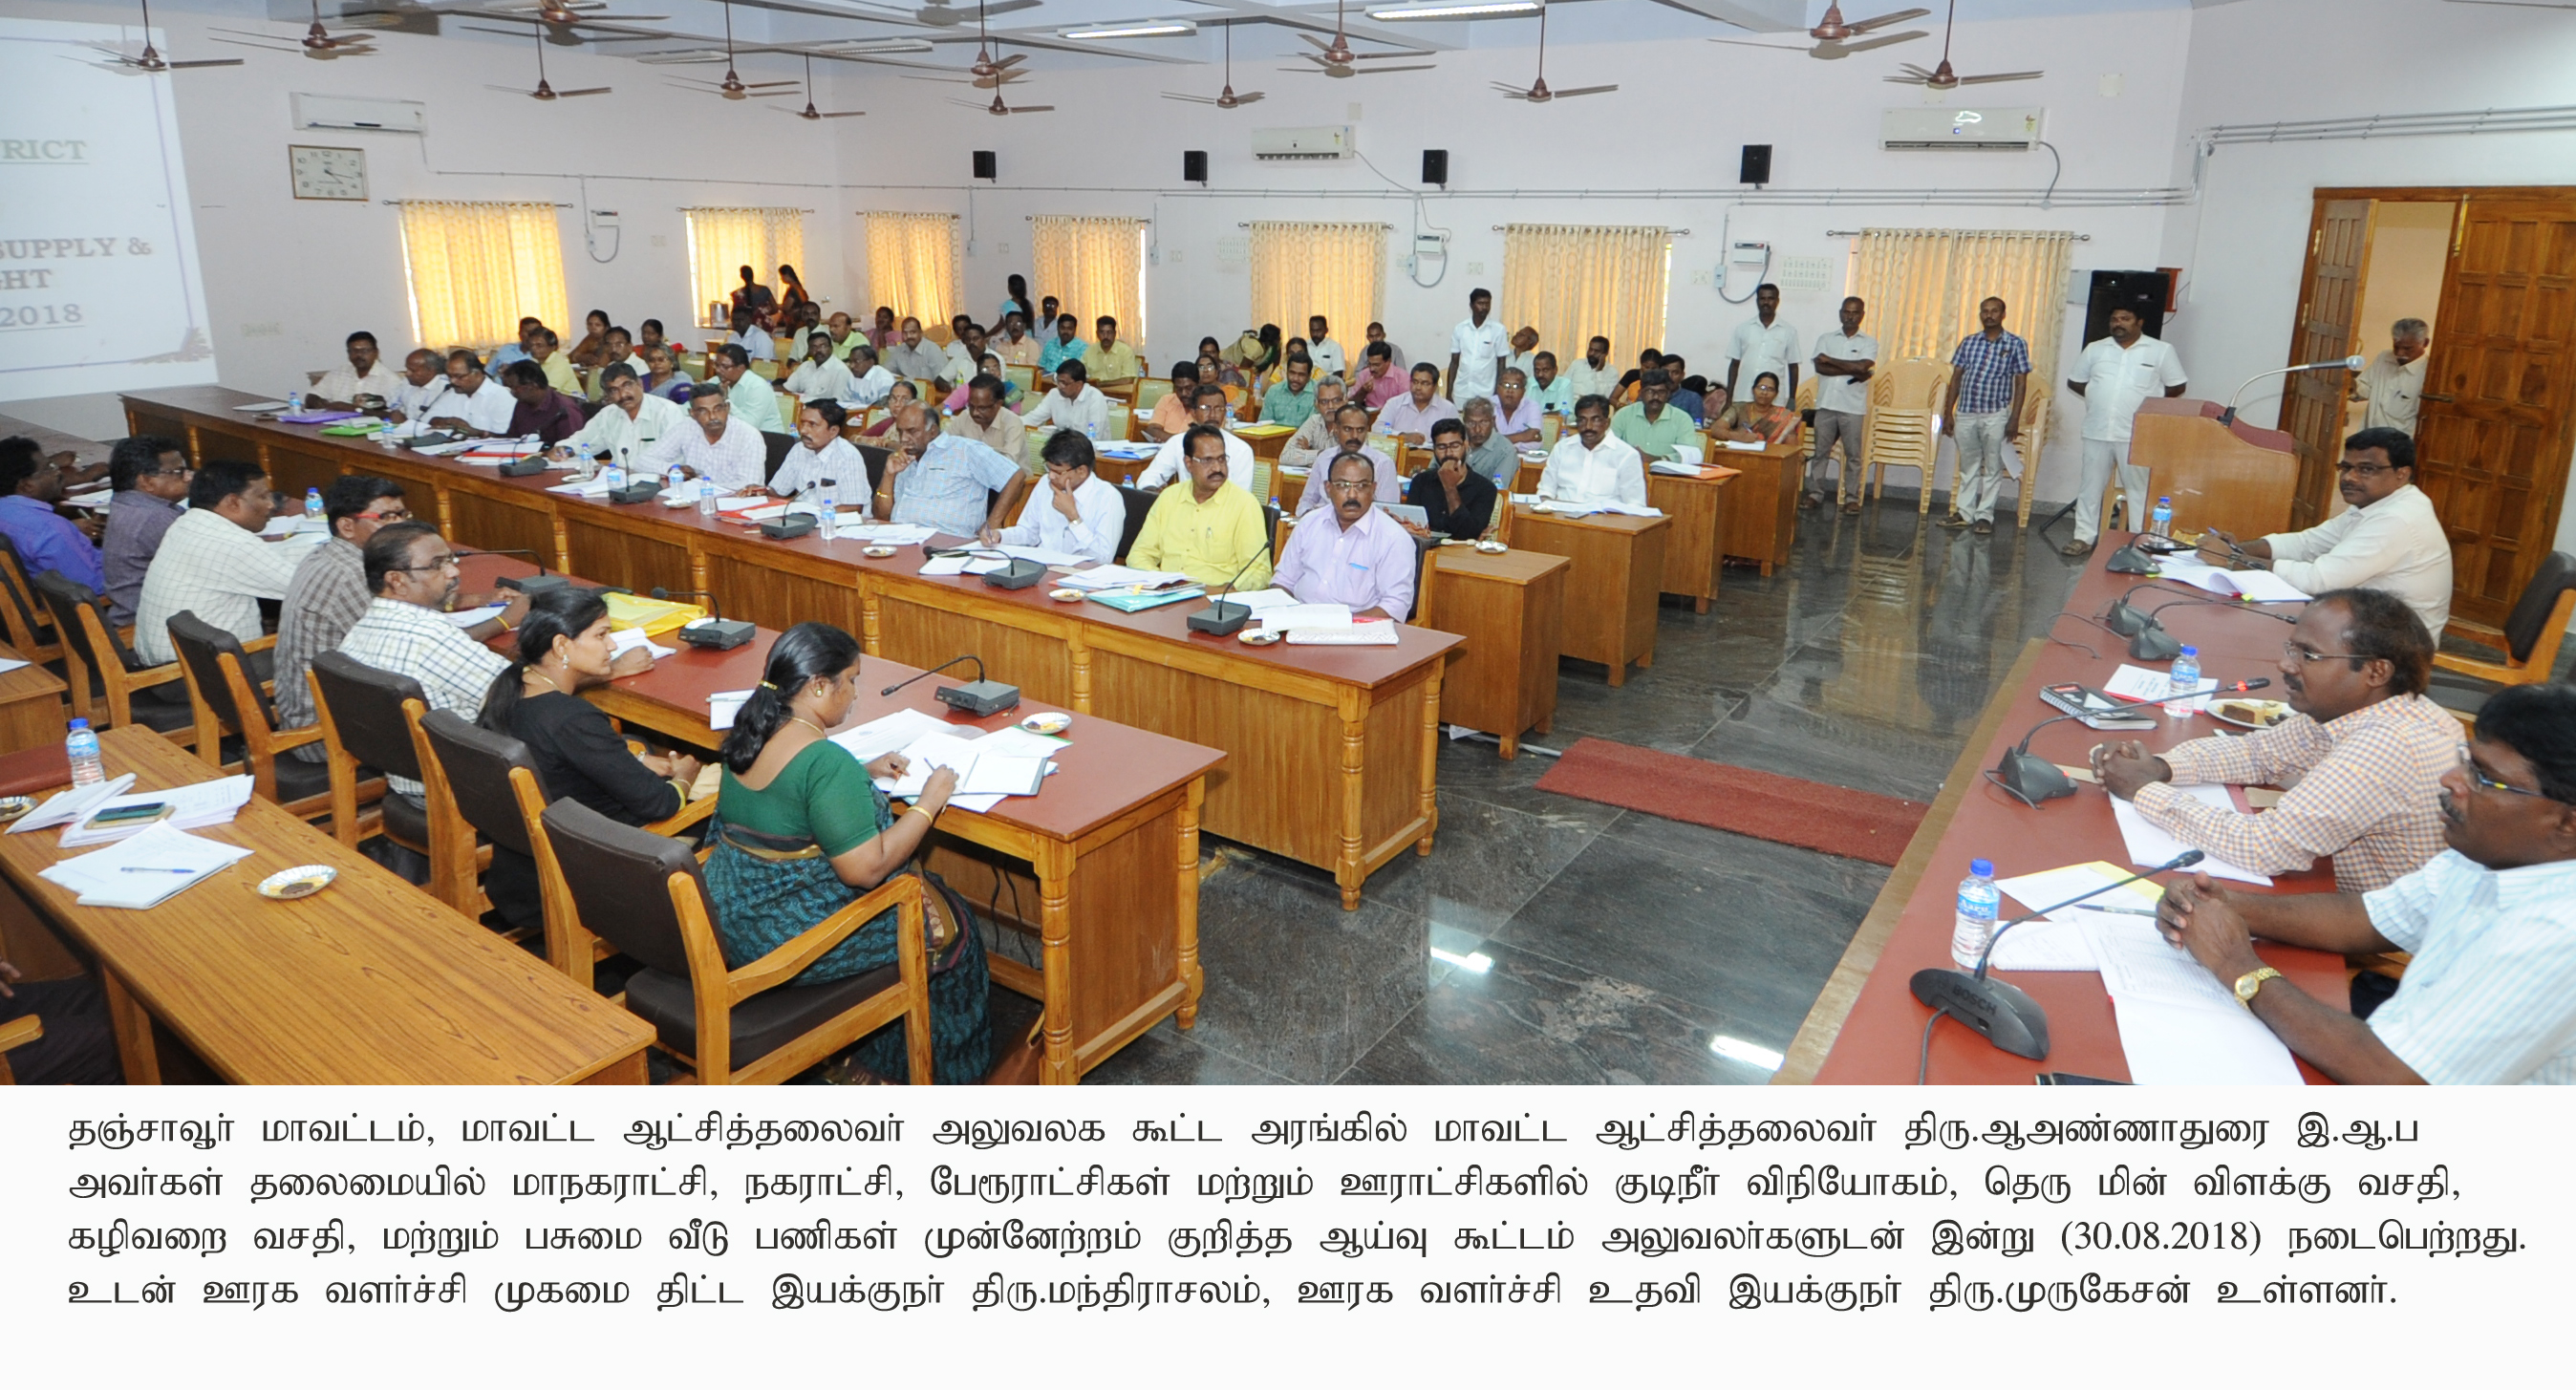 Image of Dist Collr Water Distribution review meeting